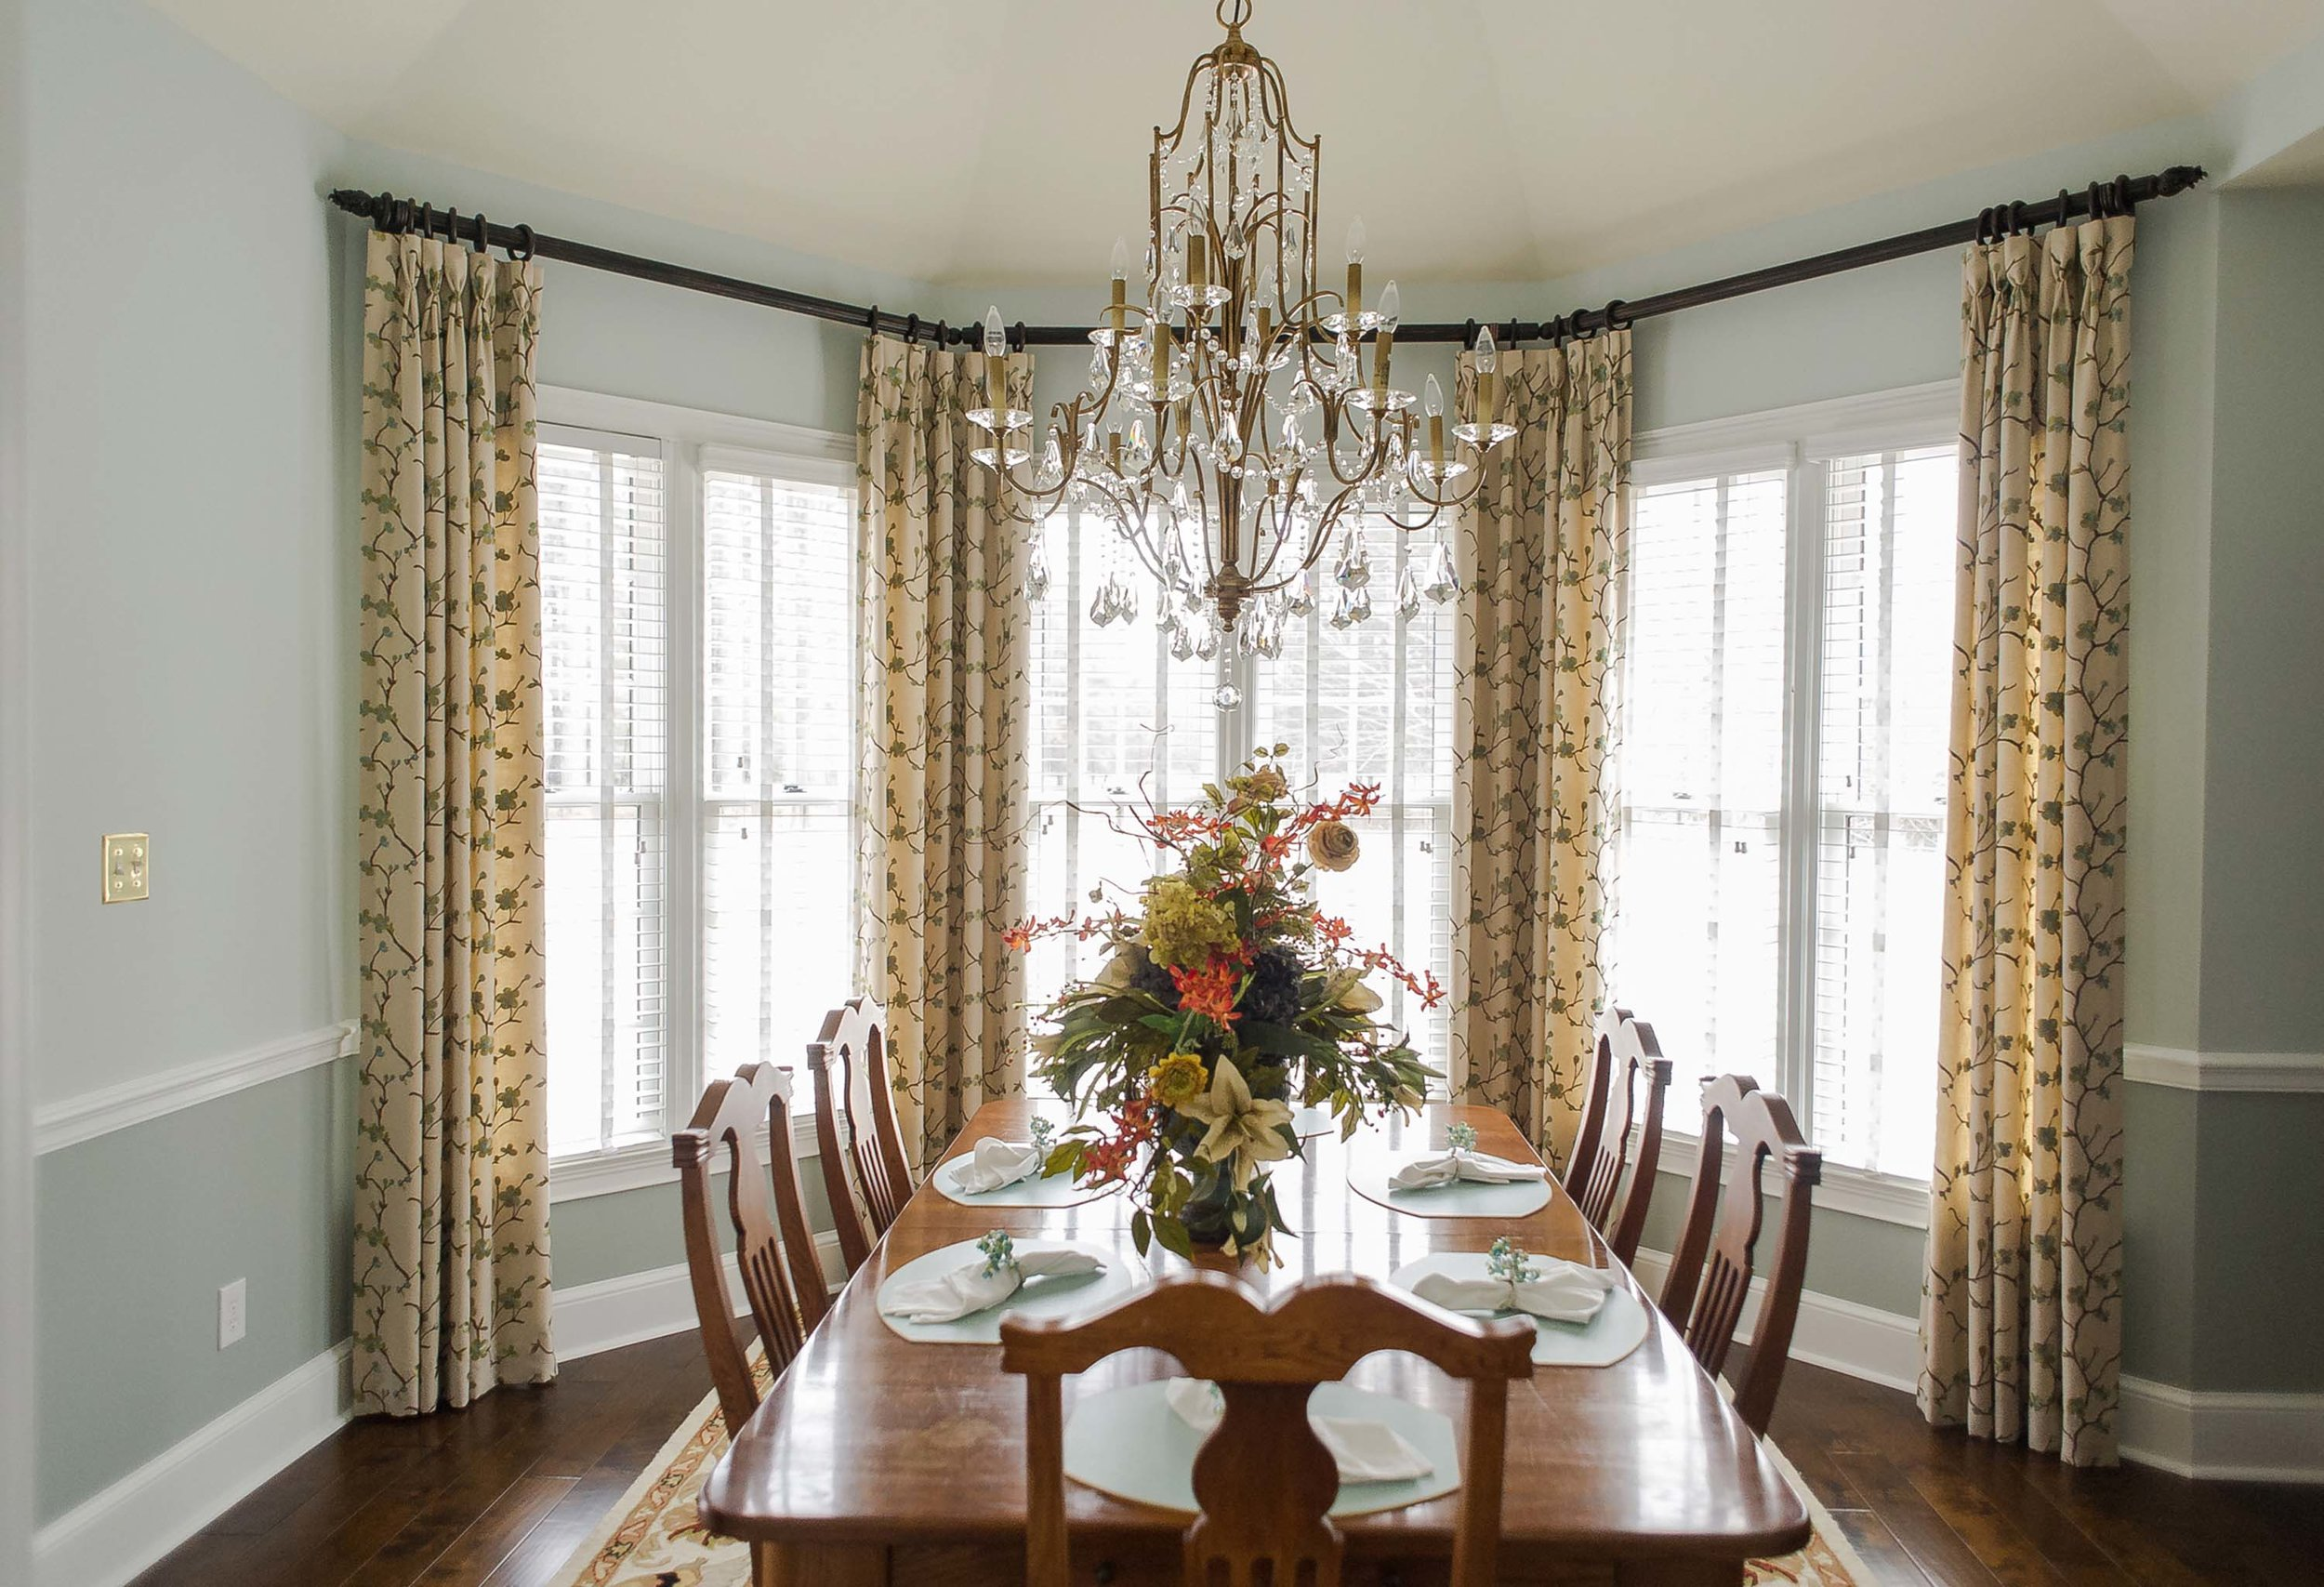 Large Open window with shutters, custom window treatments and floral table arrangement